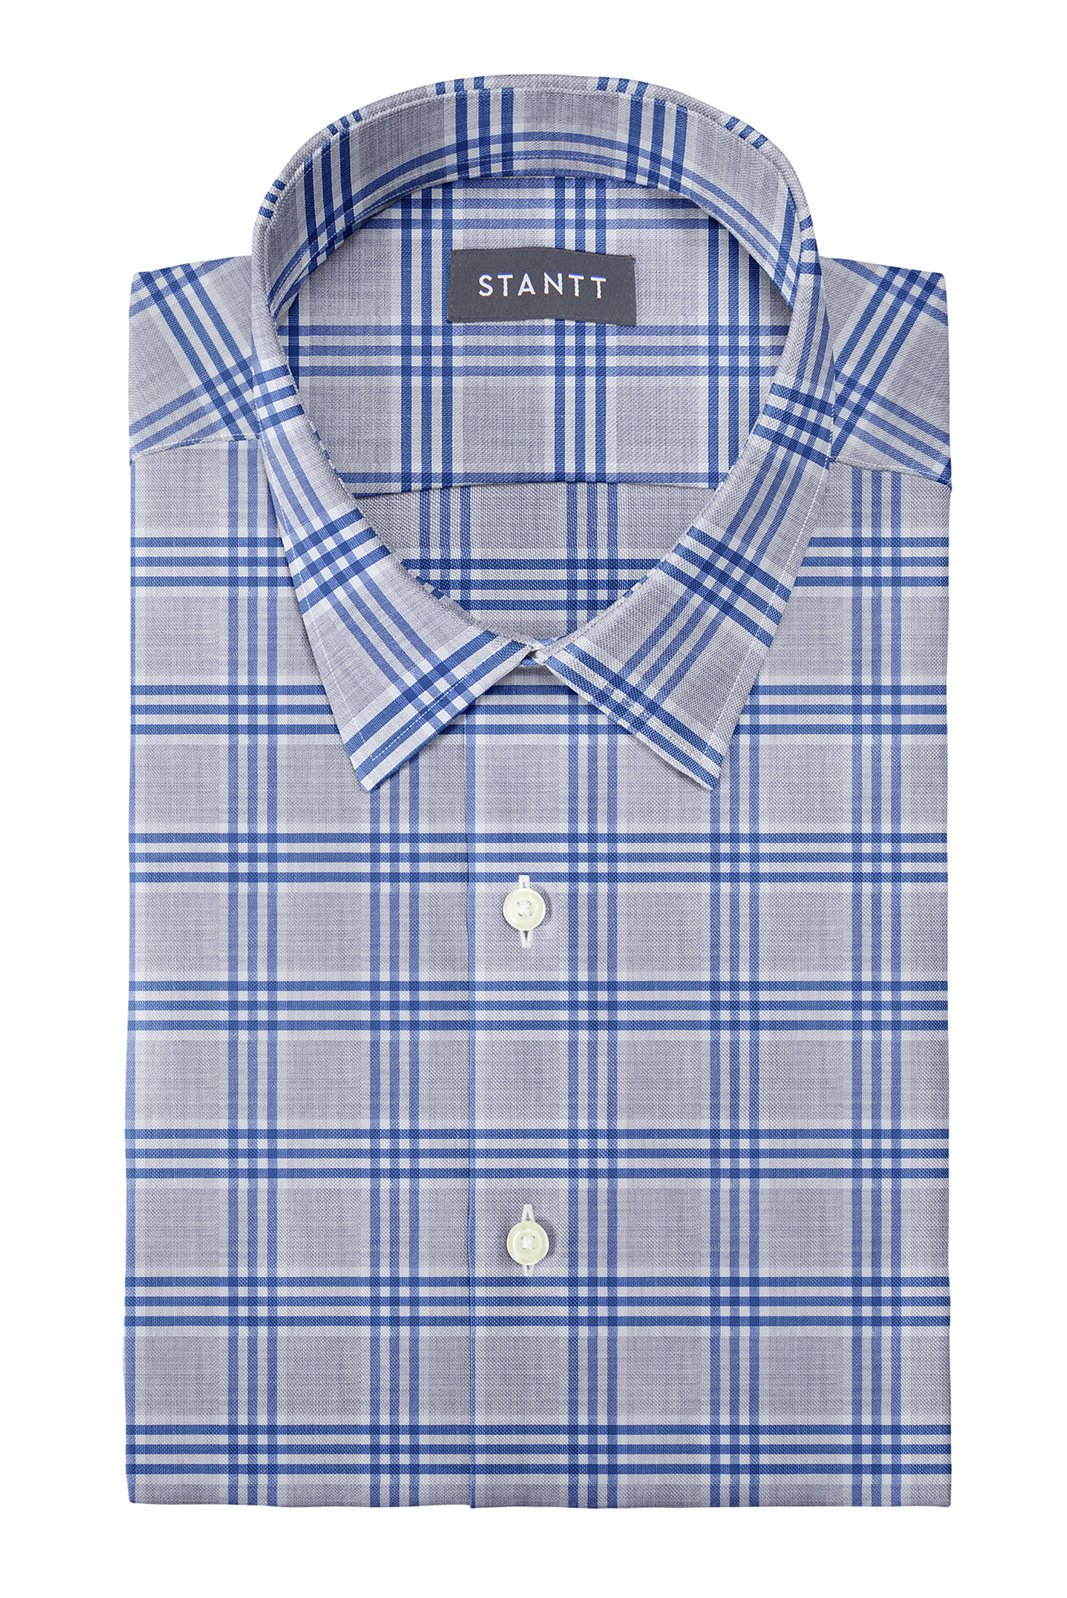 Melange Grey and Blue Box Check: Semi-Spread Collar, French Cuff